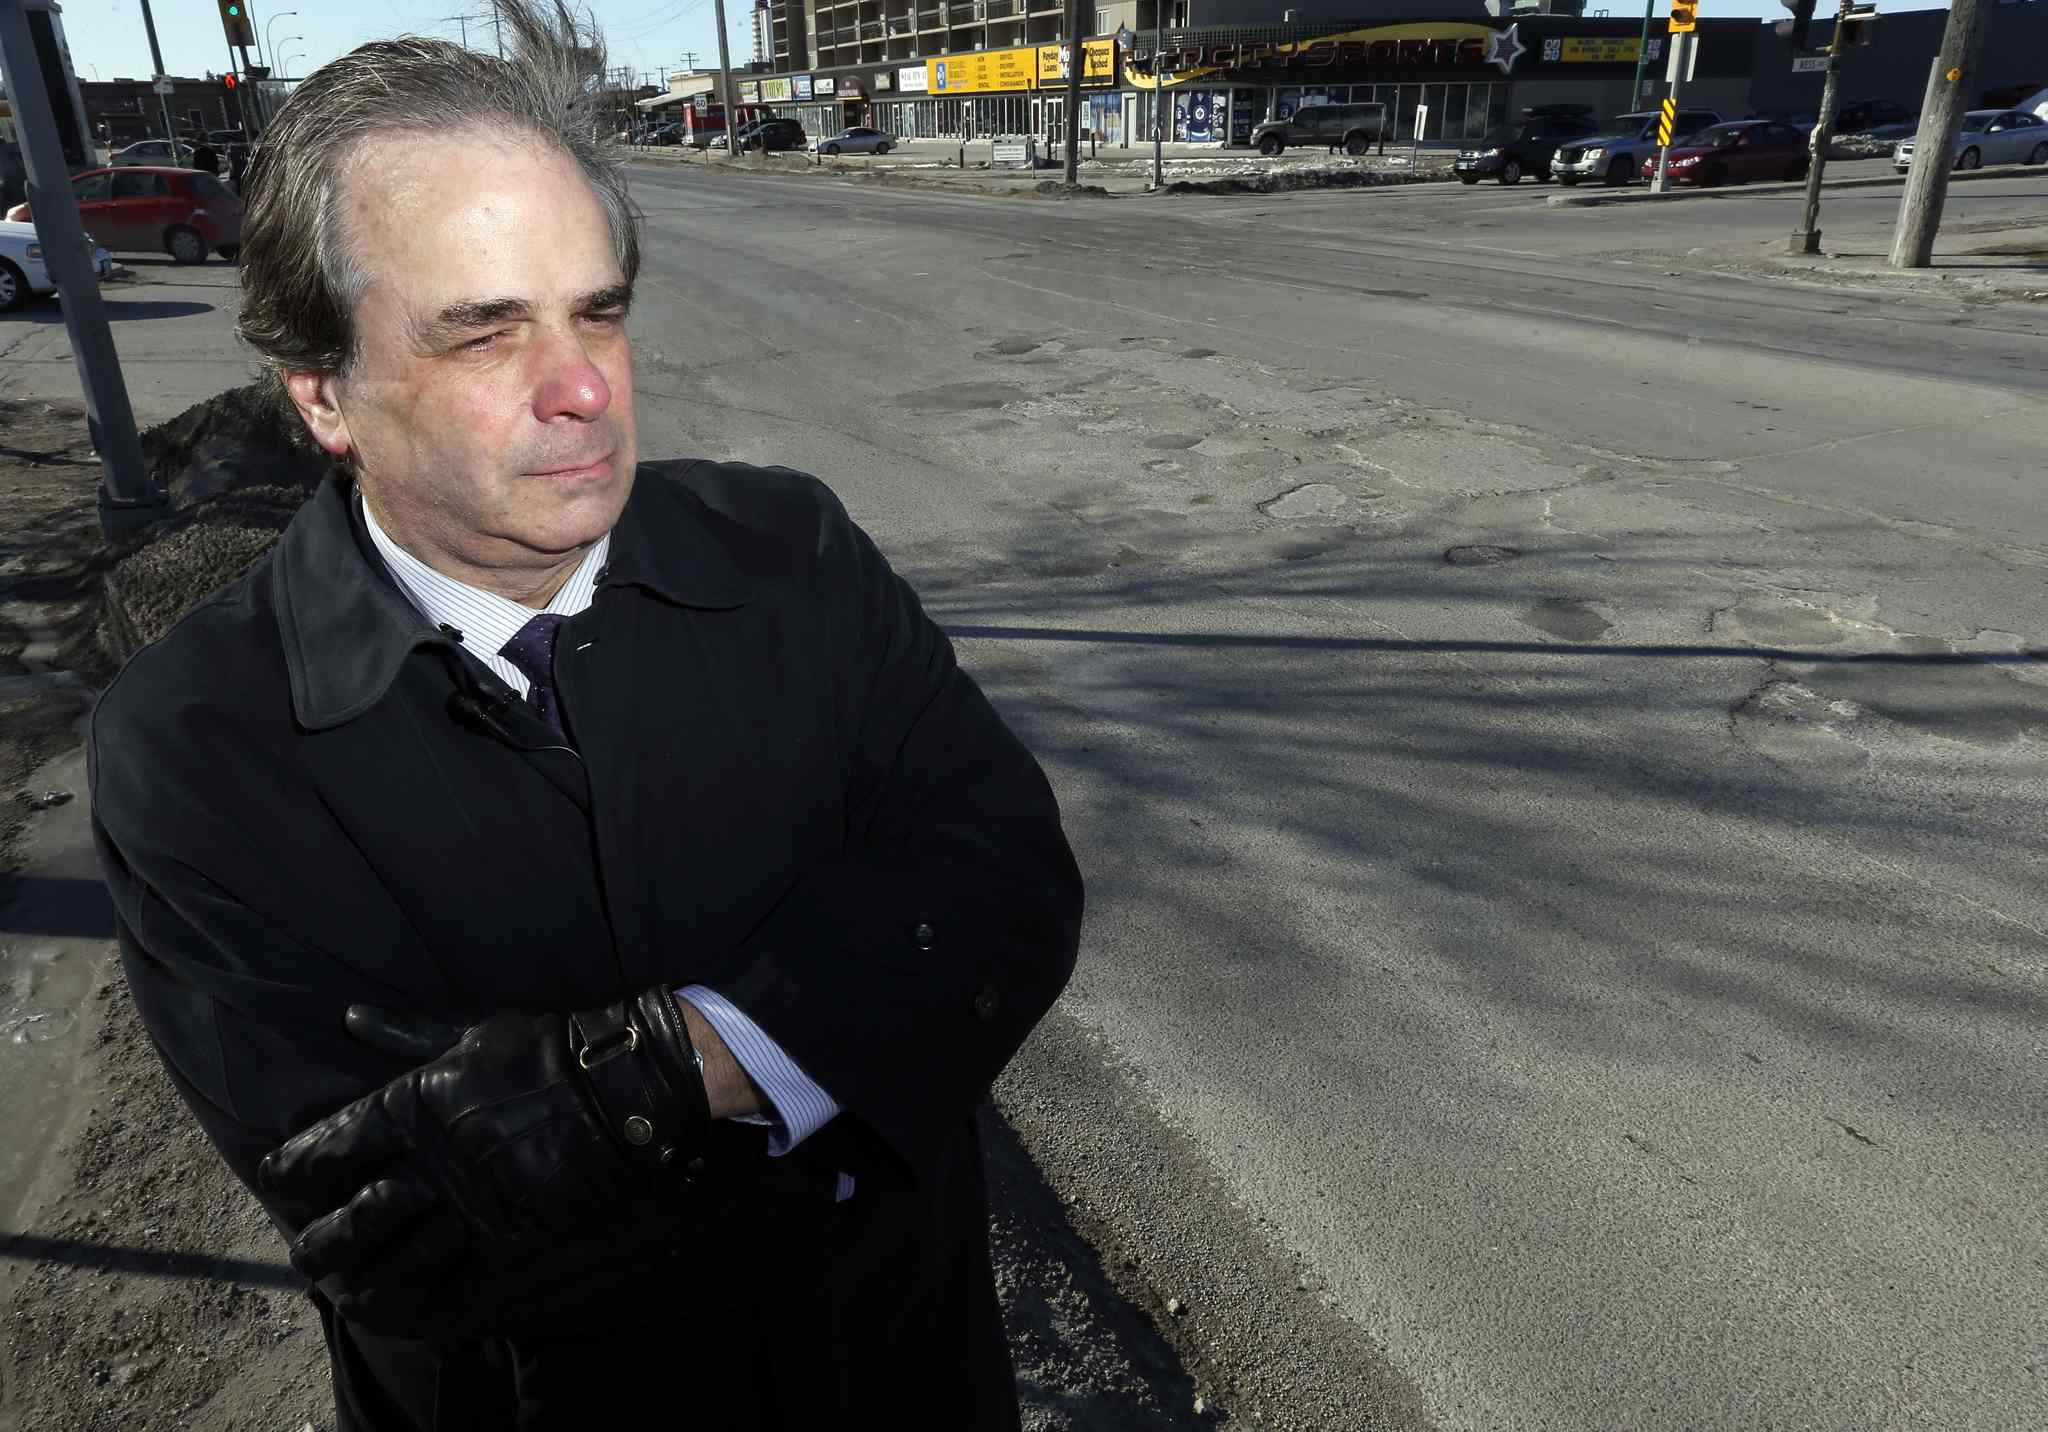 CAA President and CEO Mike Mager stands at the  corner of St. James Street and Ness Avenue as CAA launches its 3rd Annual Manitoba's Worst Roads Campaign.